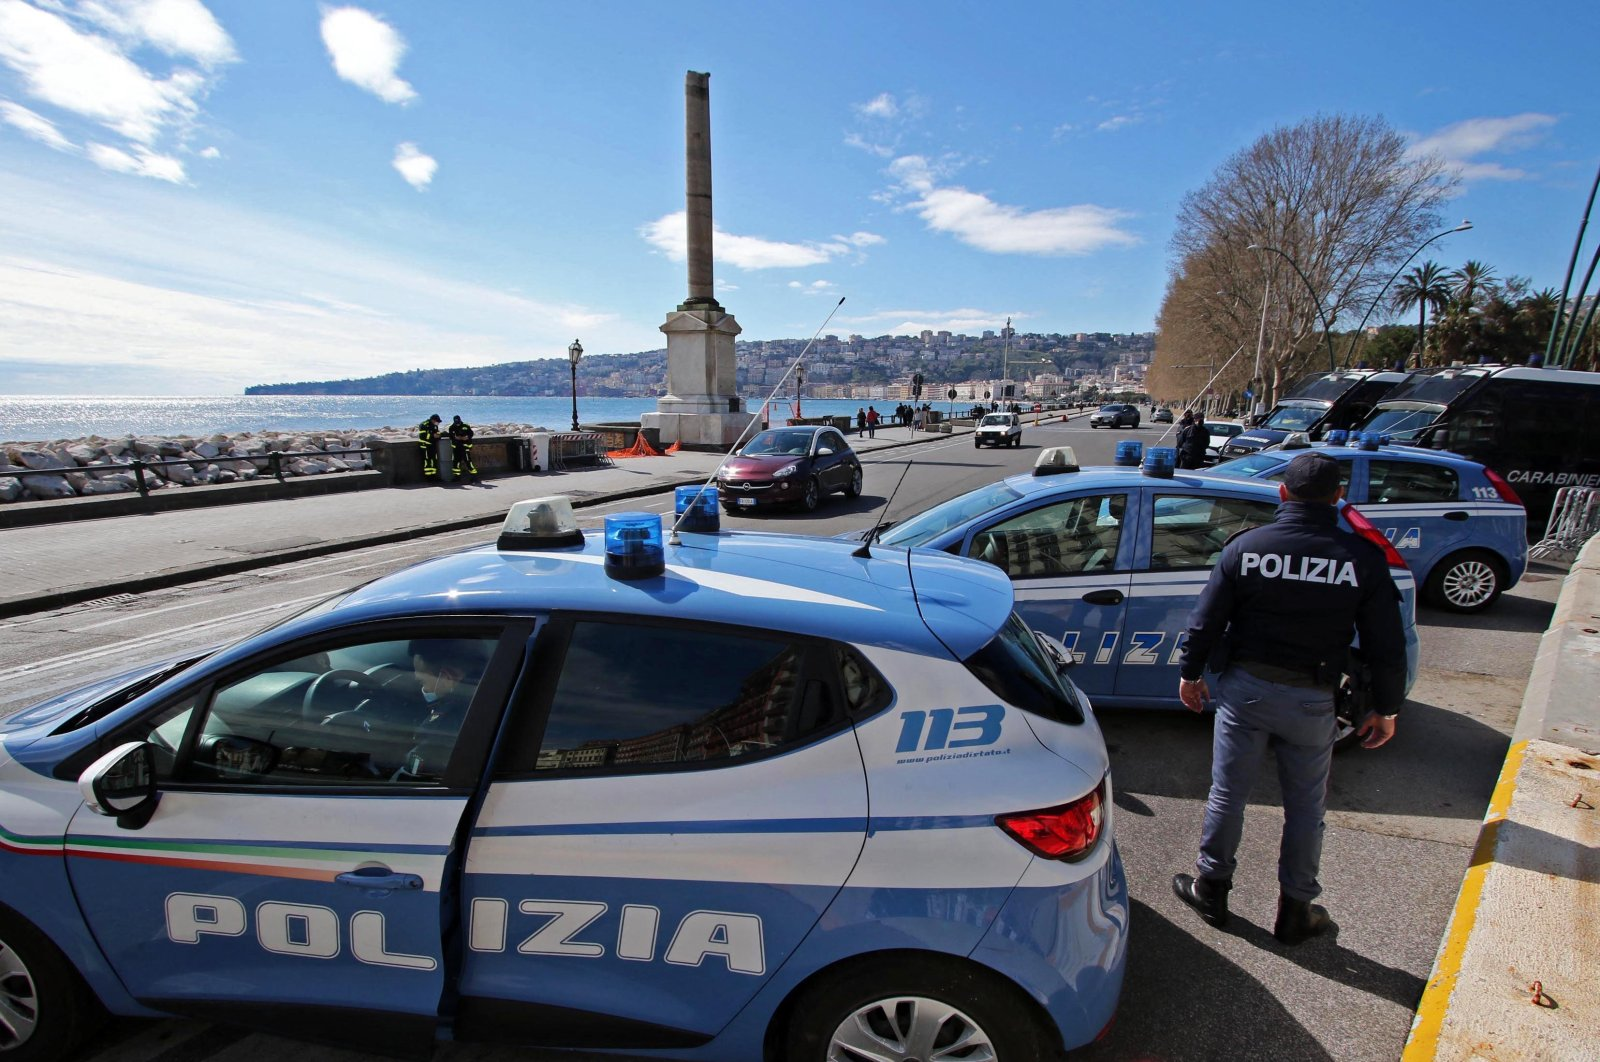 Police cars parked in Naples, Italy, March 20, 2021. (Reuters Photo)